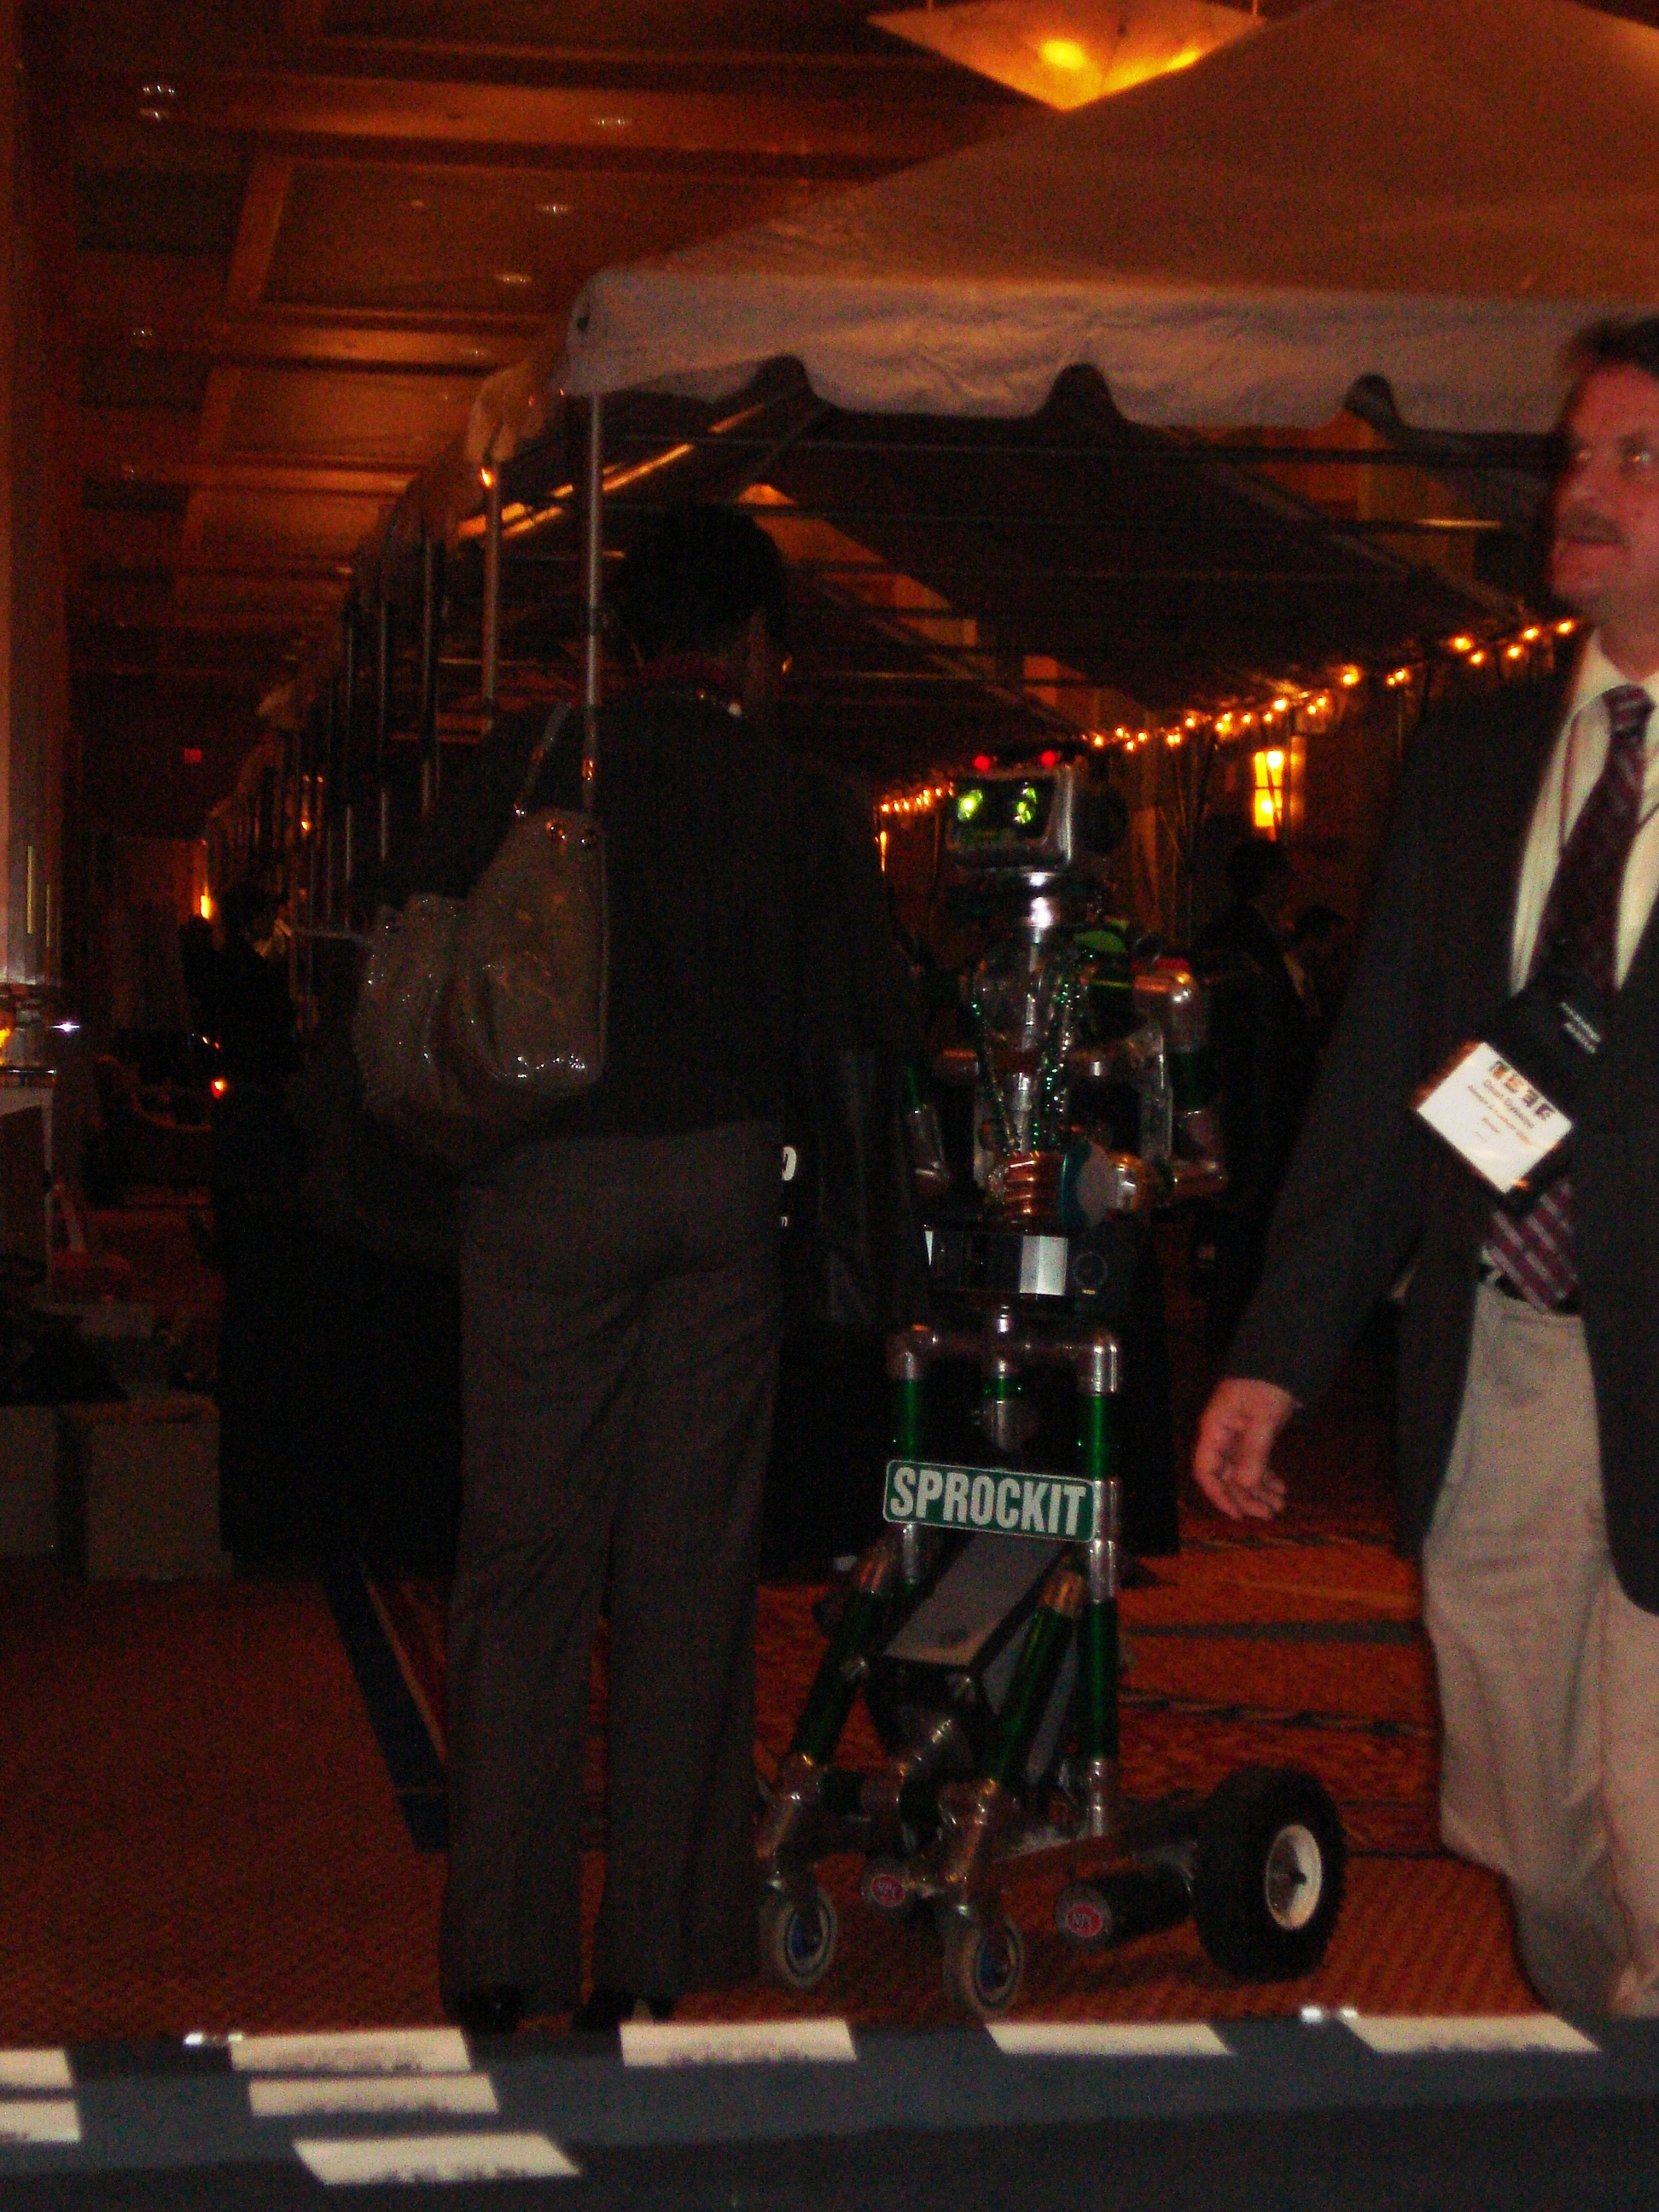 Sprockit the Robot chatting up one of the guests